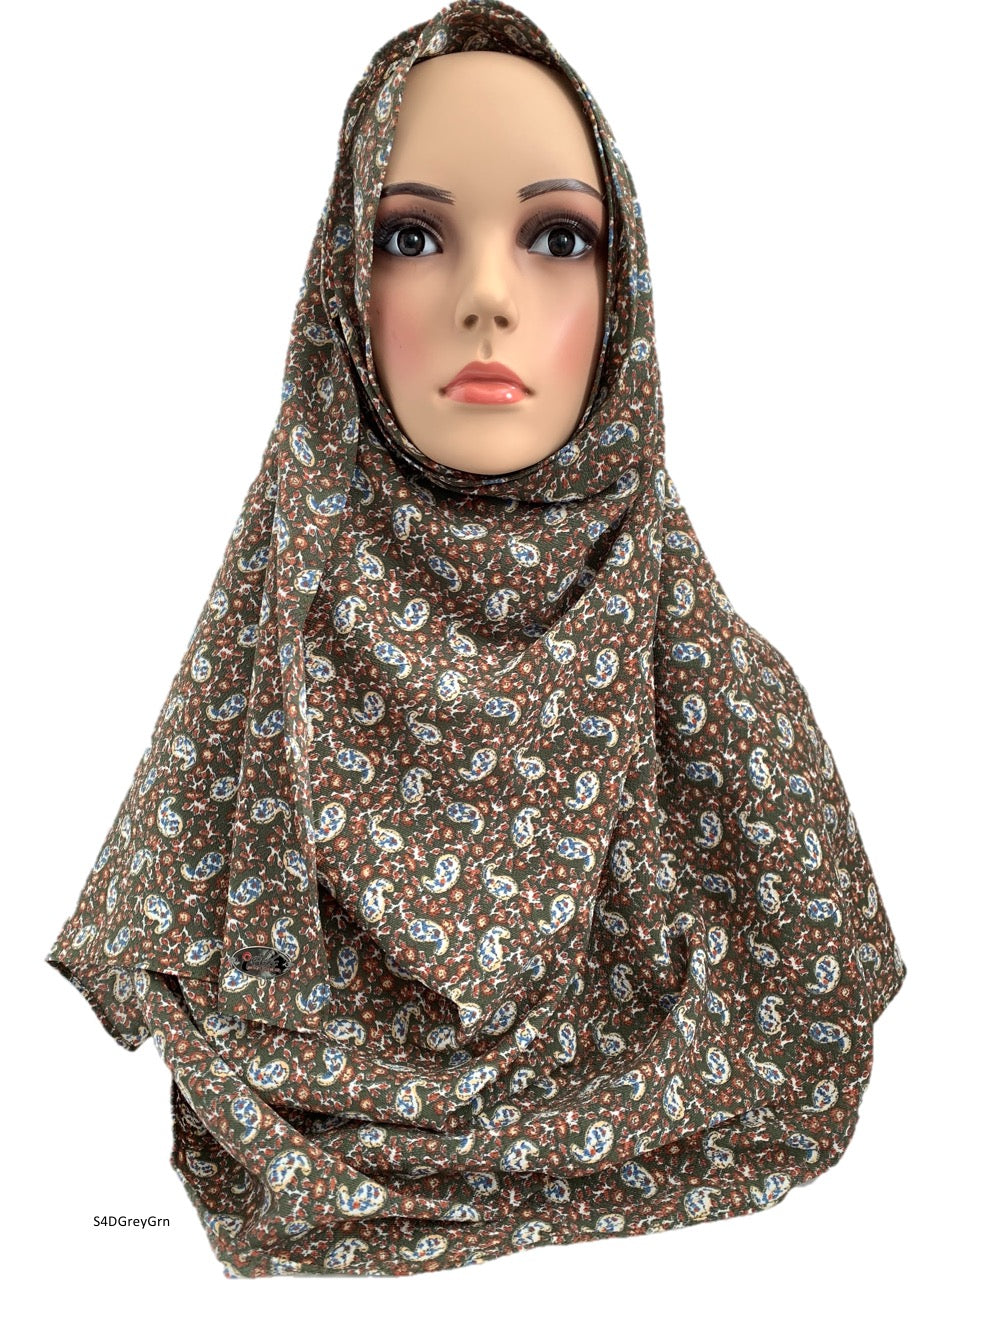 (S4DGreyGrn) Grey Green printed full instant hijab